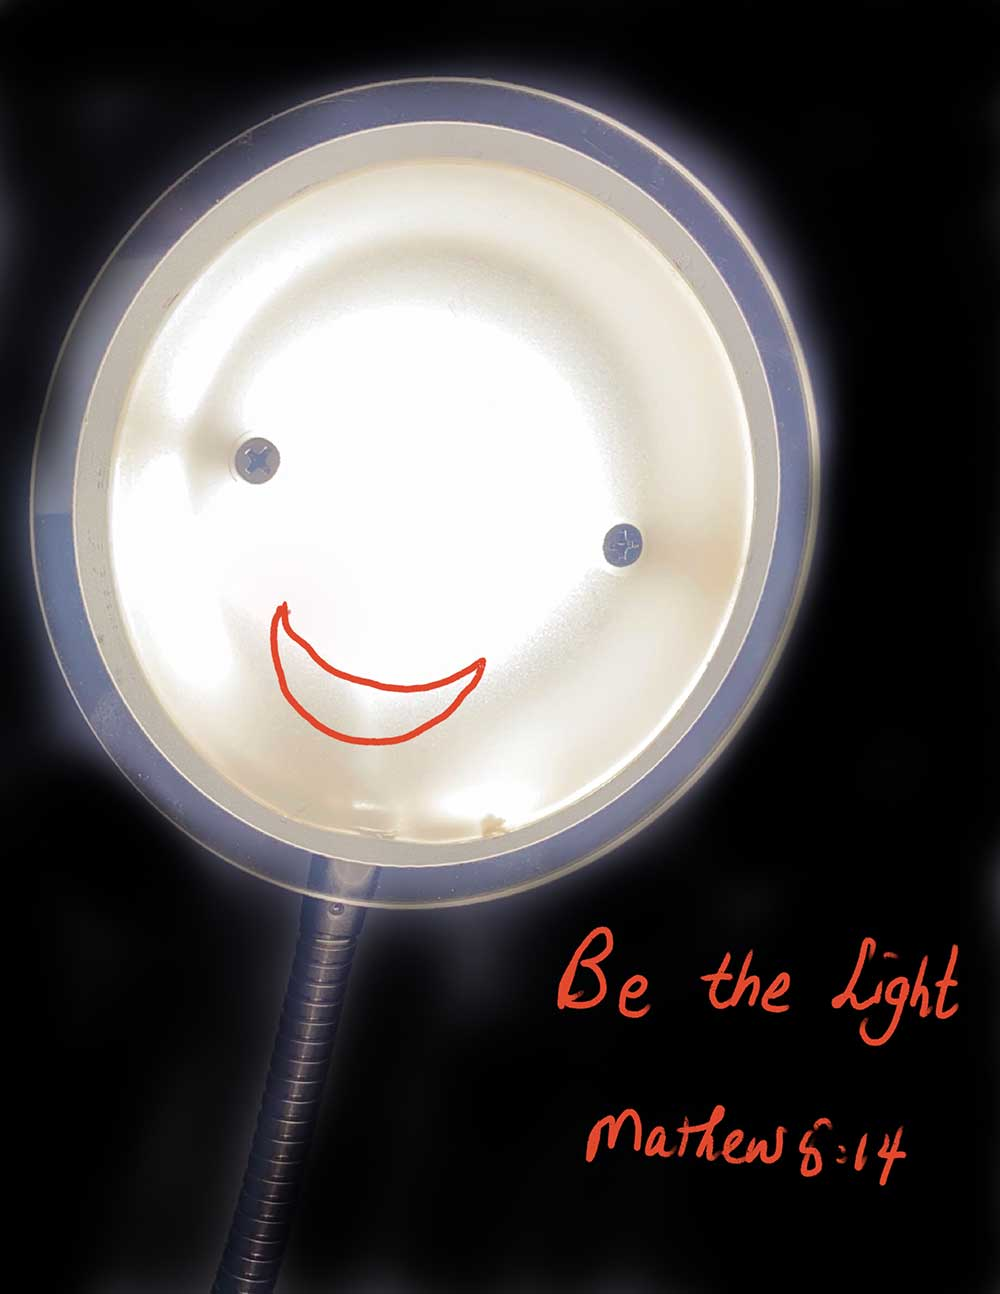 """A close up of a lamp with a black background. The lamp is circular with a wire extension attached to support it. The lamp has two screws placed in the centre of the light forming what look like eyes. Underneath the screws is a red mouth forming an open mouthed smile. In the bottom right corner is red text that reads """"Be the Light, Matthew 5:14""""."""